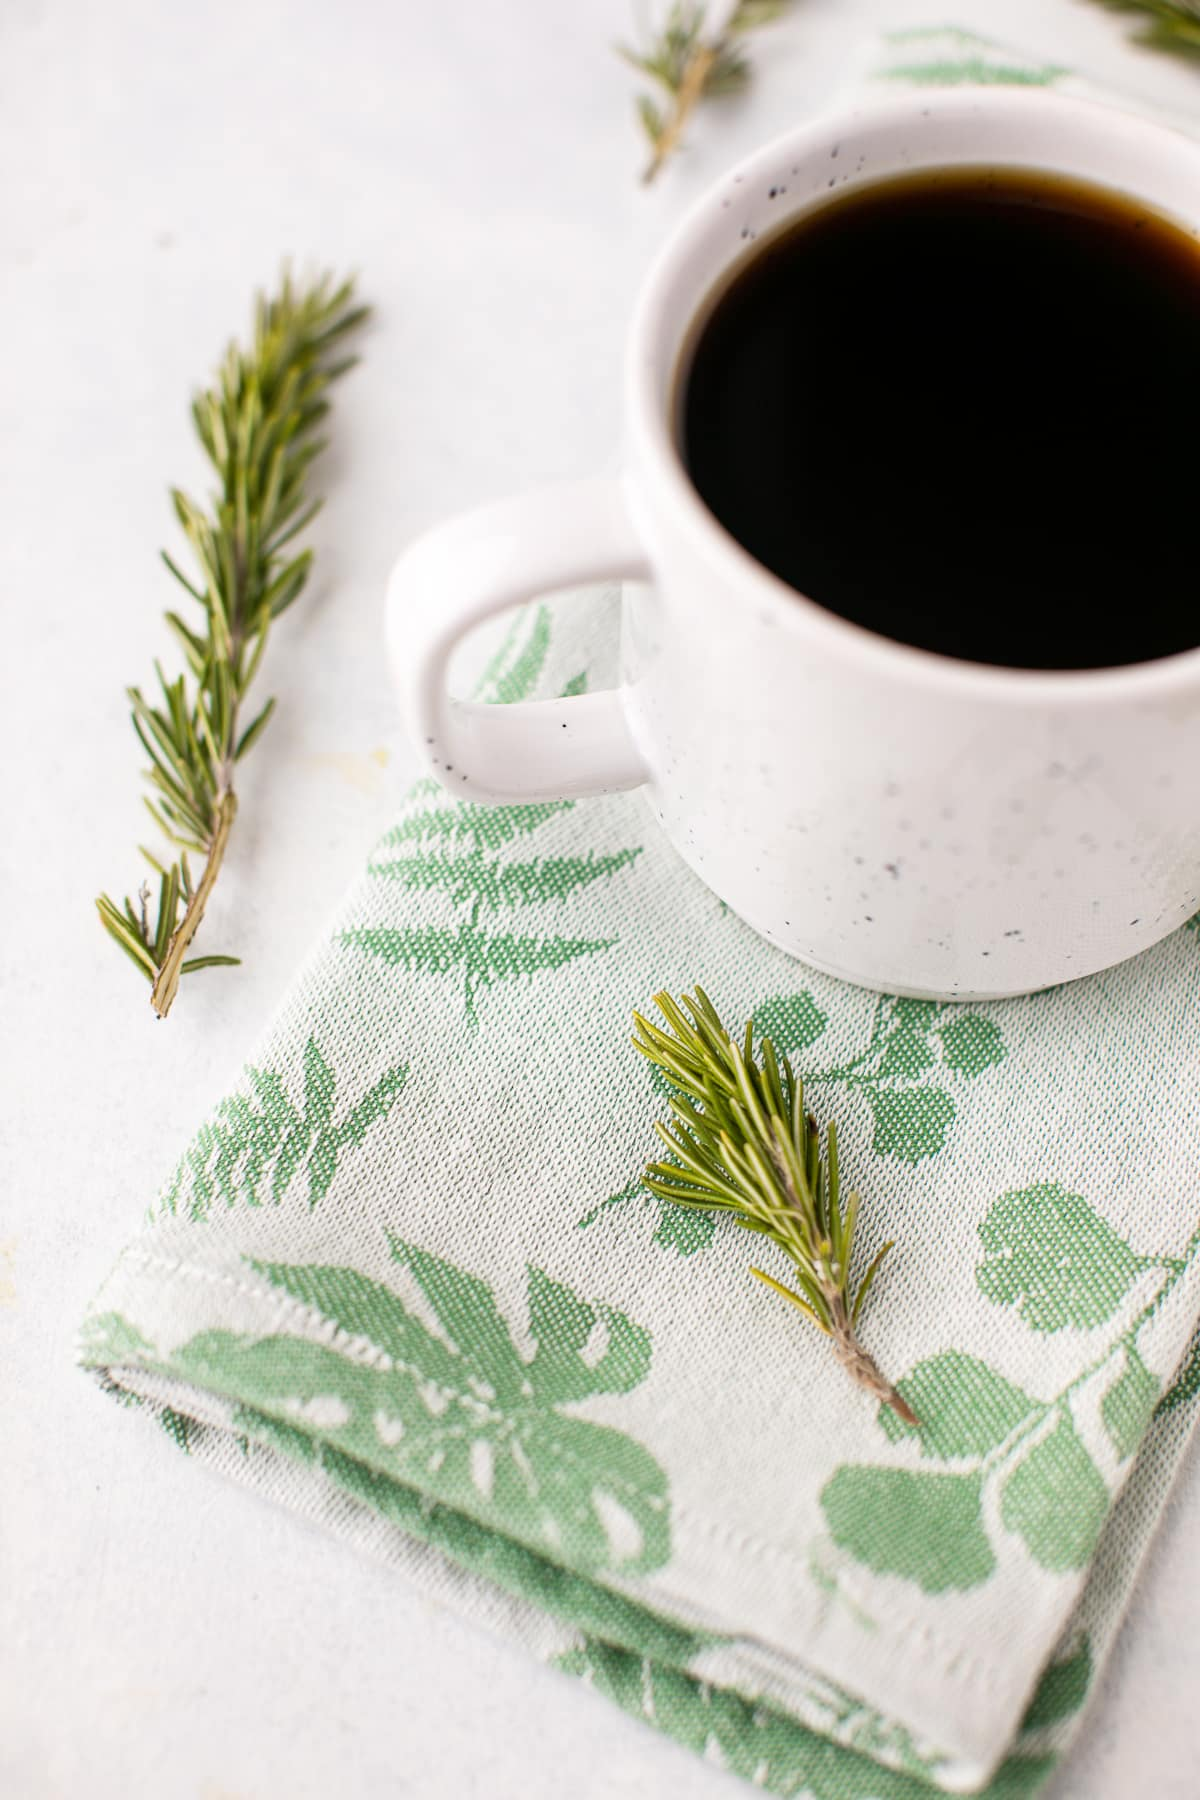 cup of coffee with fresh rosemary sprigs